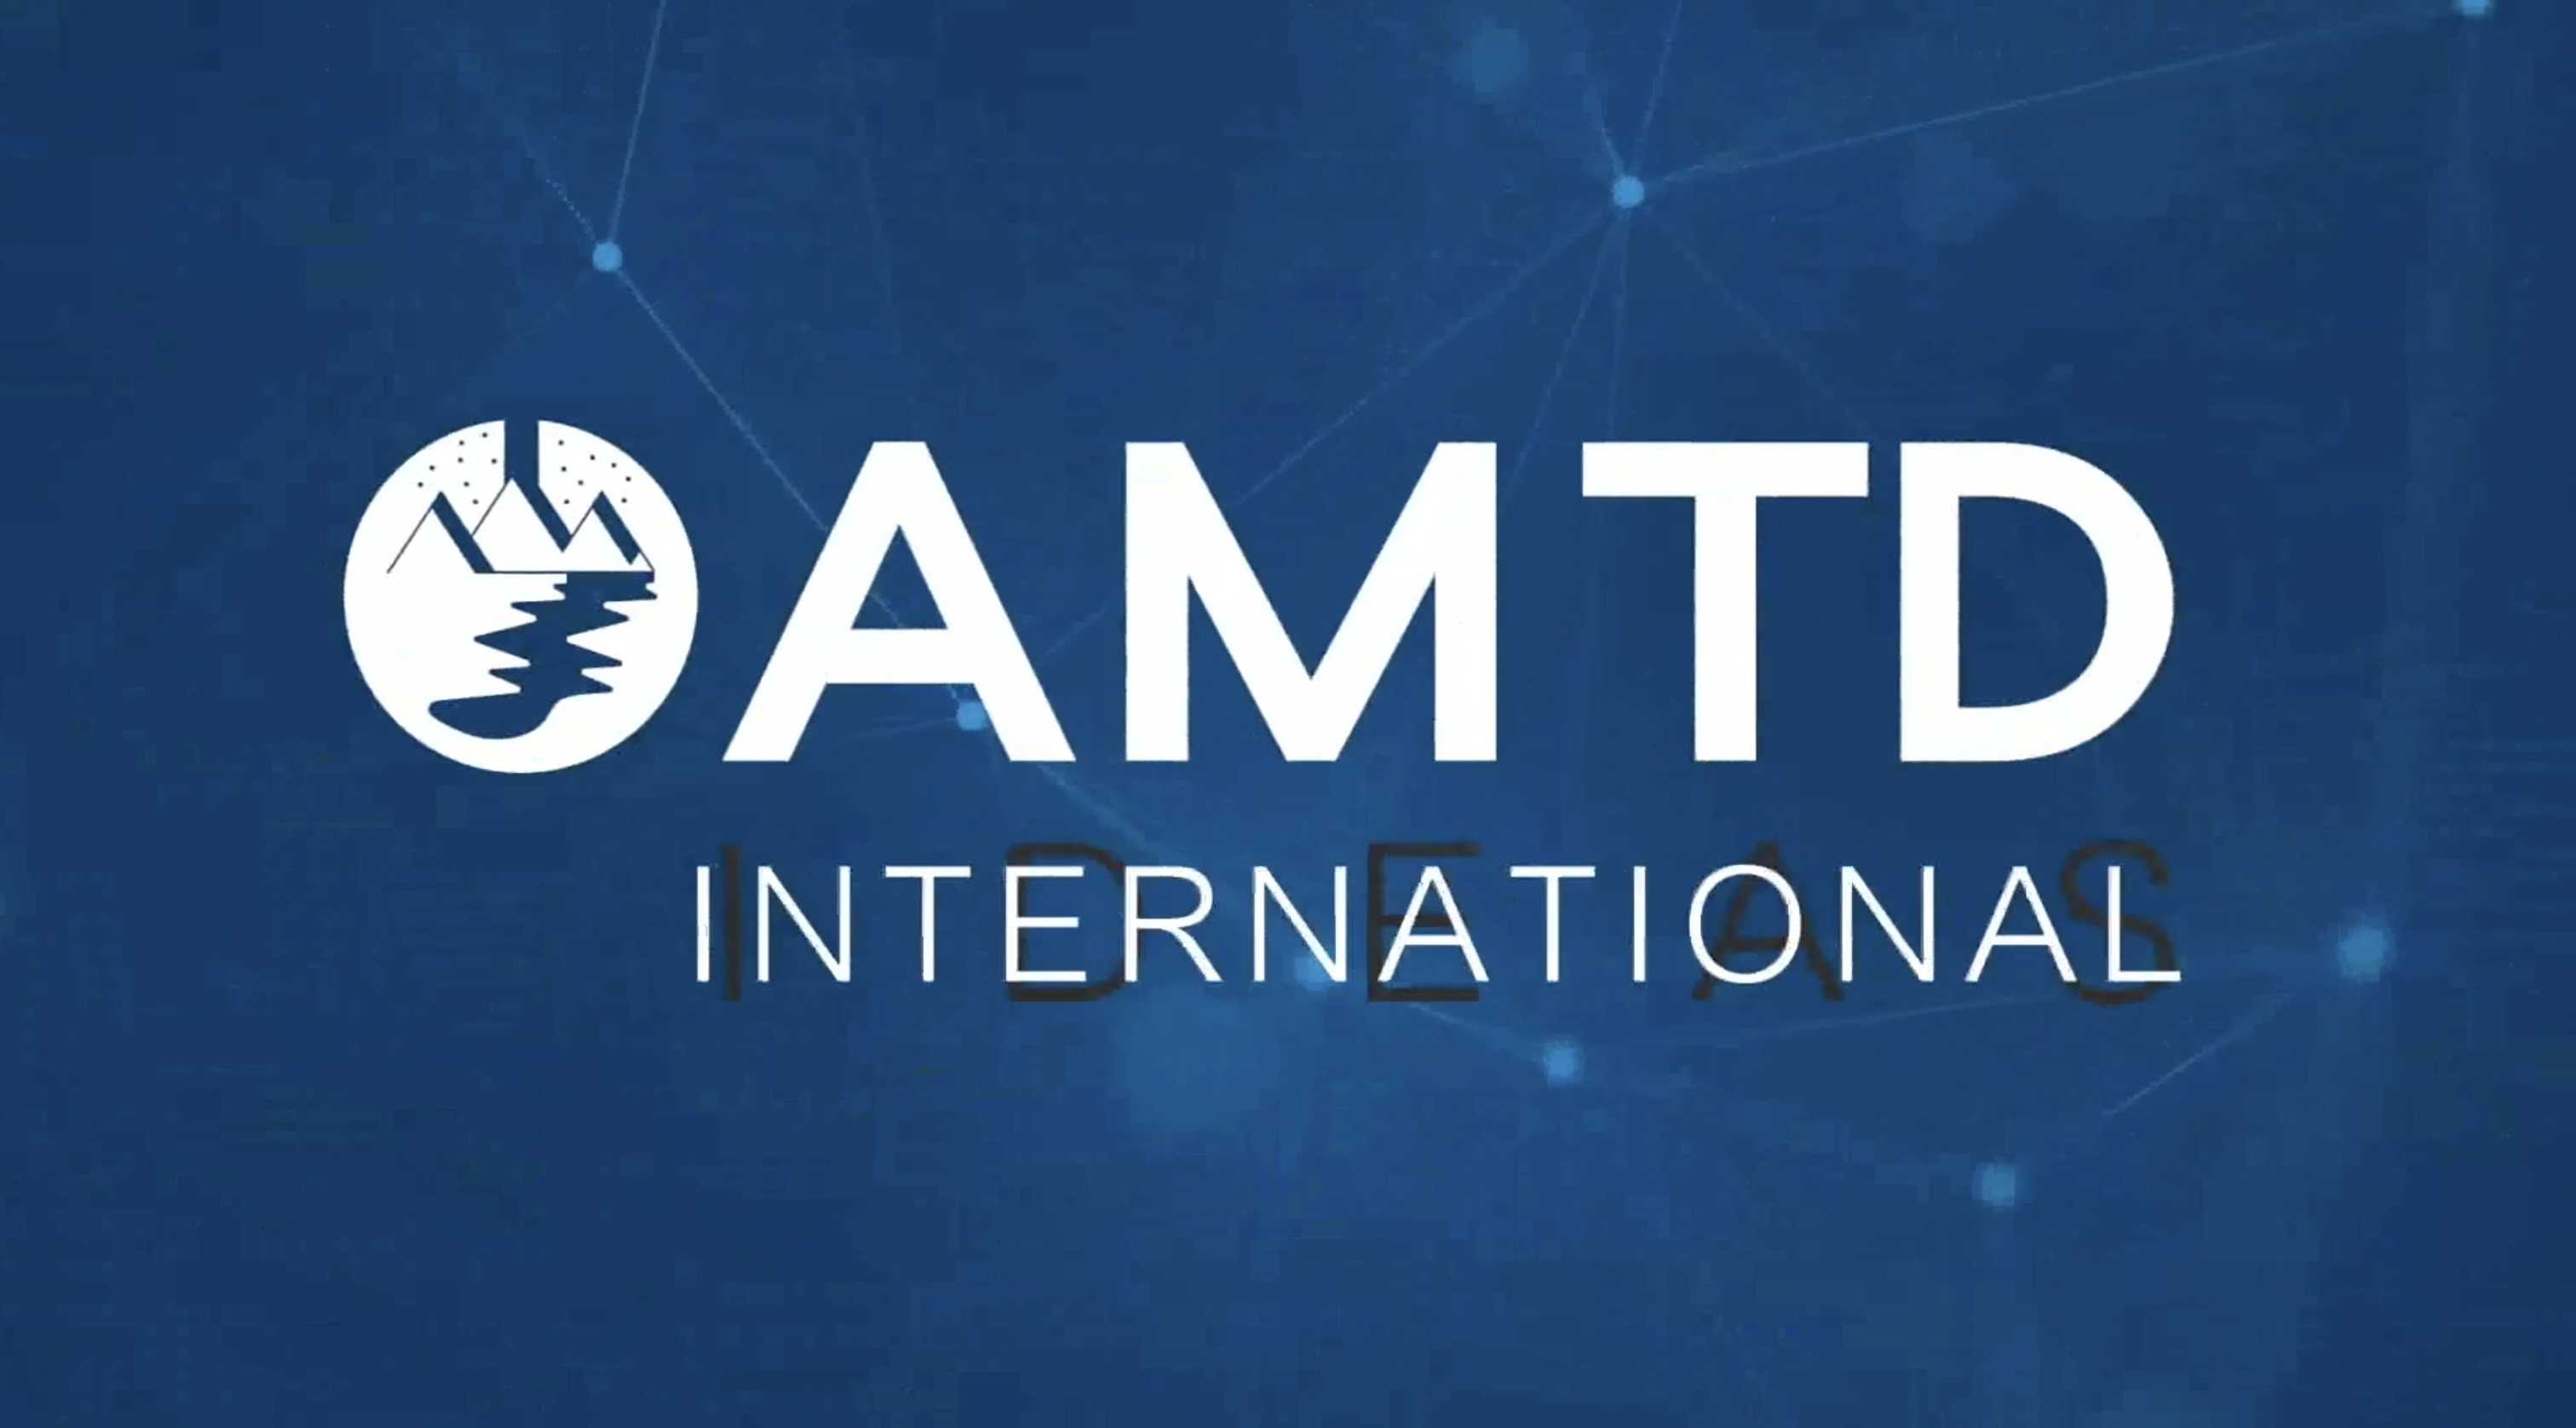 AMTD International Inc. Reports Unaudited Financial Results For The Six Months Ended June 30, 2020 And For The Nine Months Ended September 30, 2020